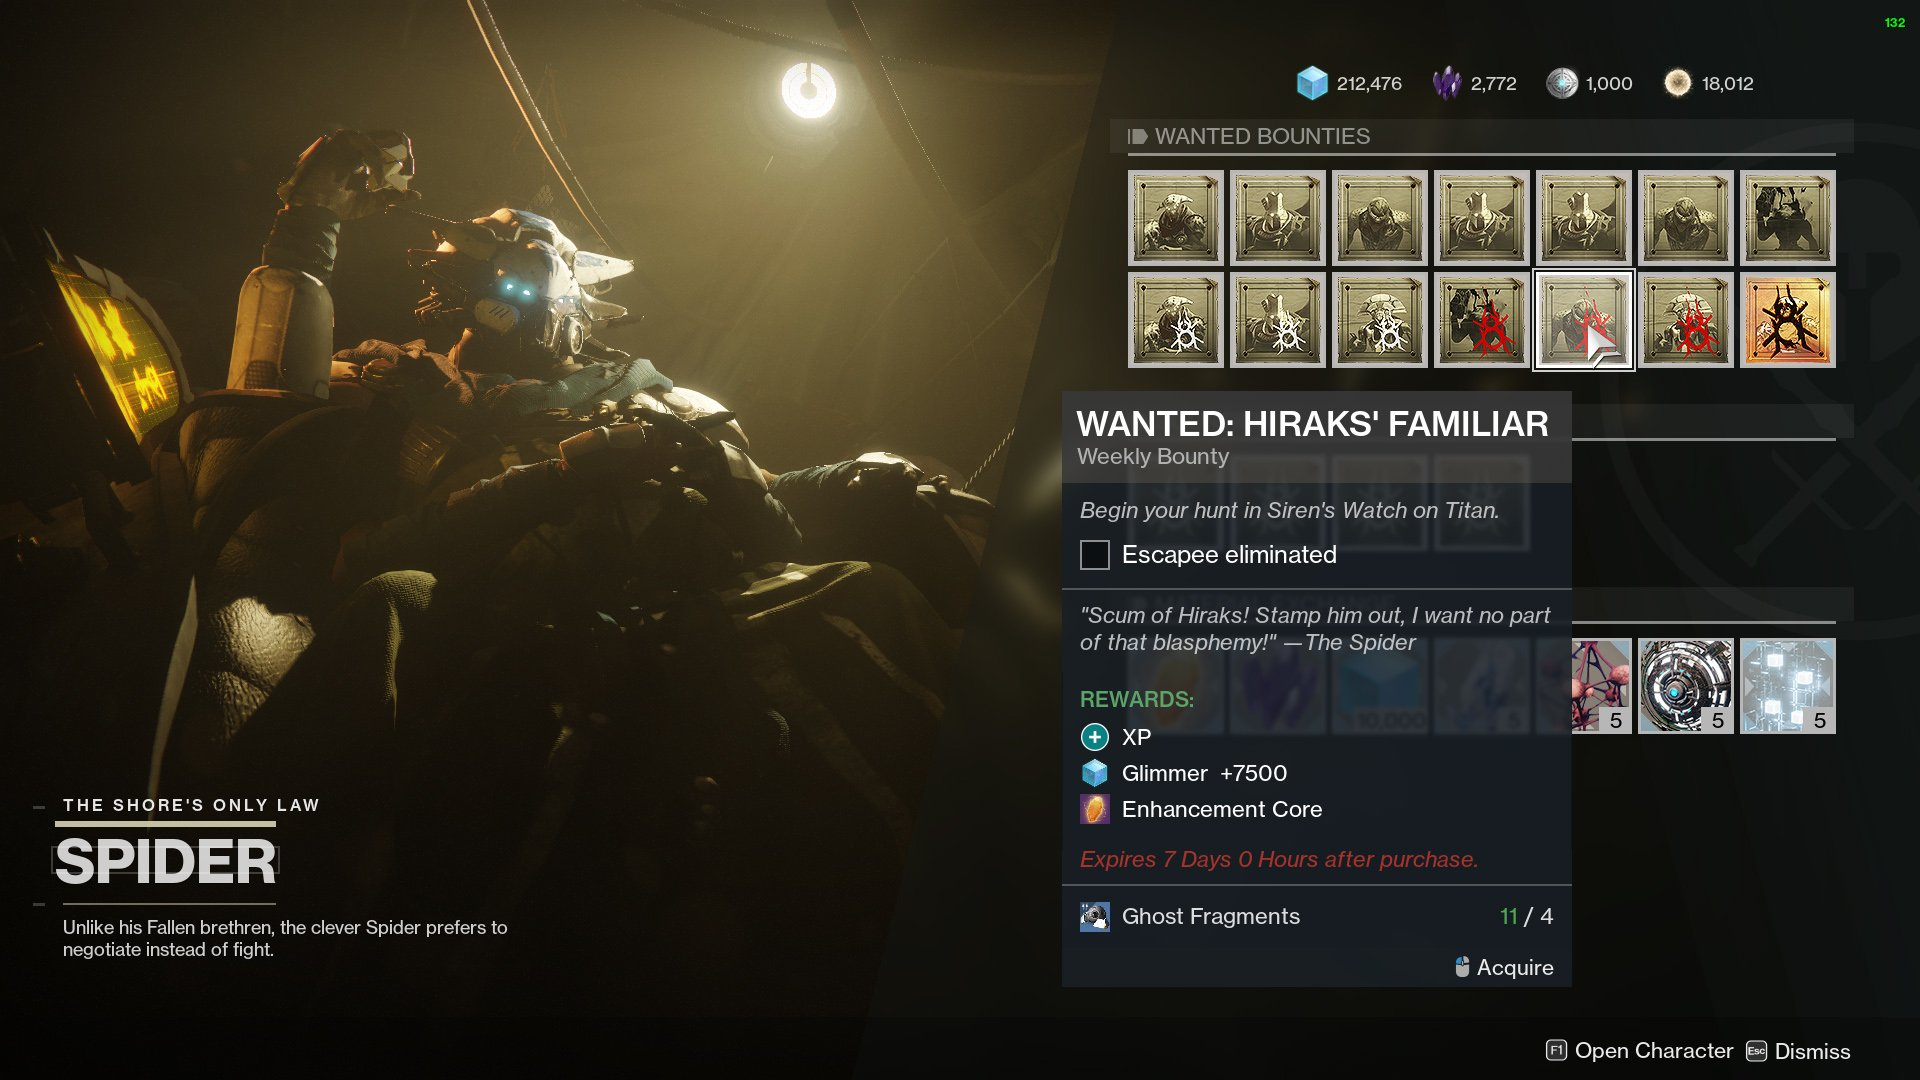 destiny 2 spider's wanted bounty hiraks' familiar